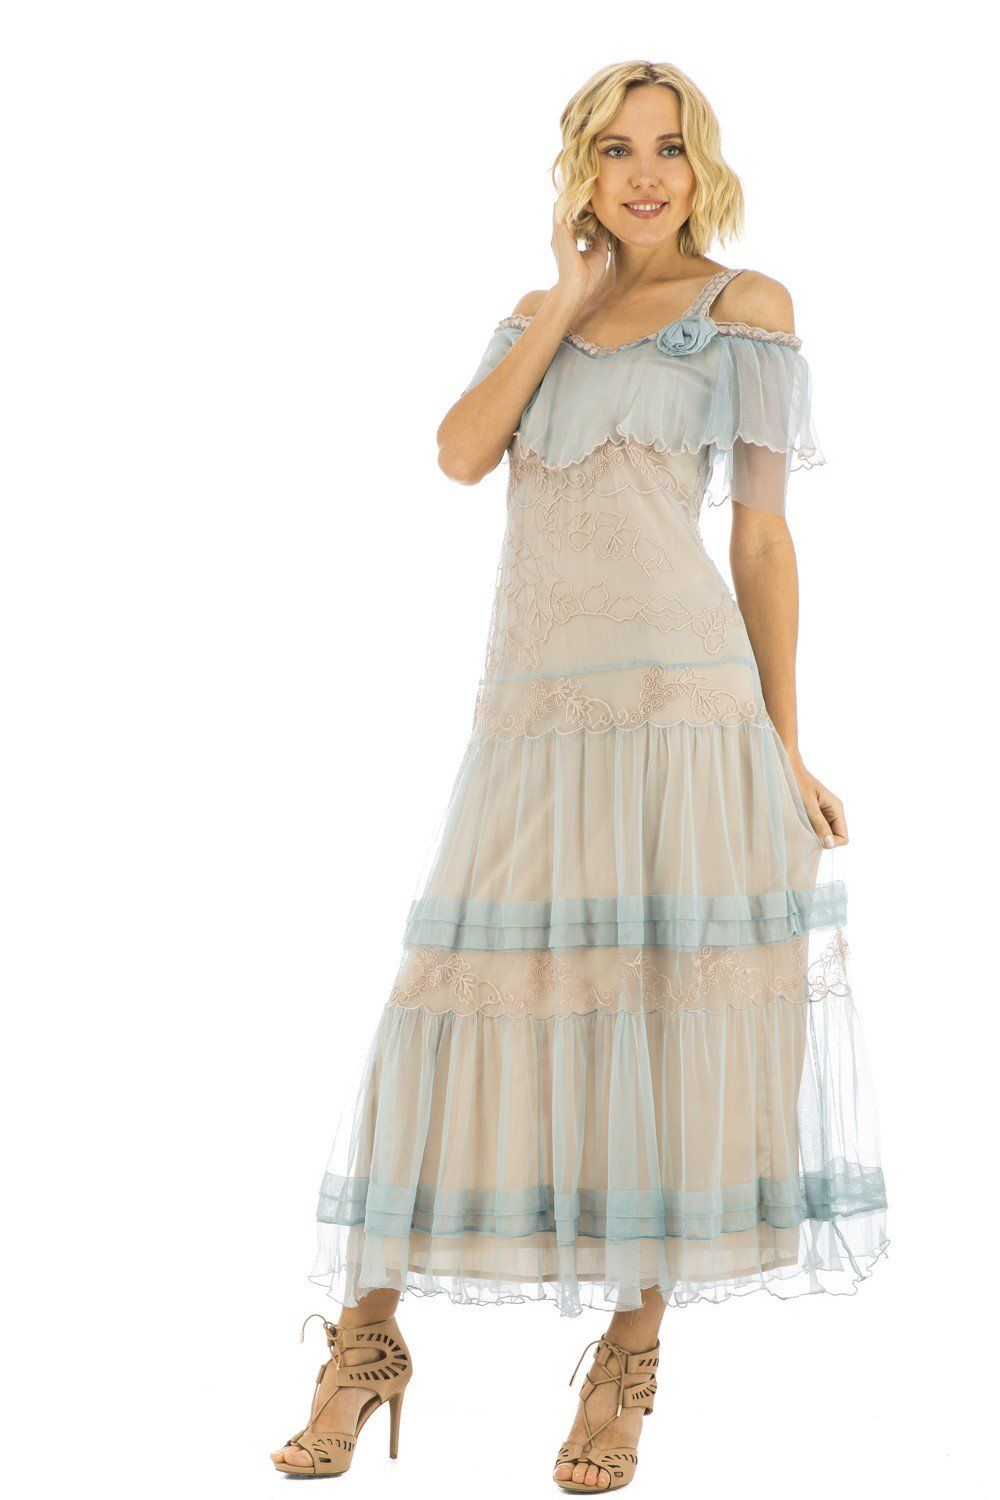 S peasant style prom dress wow s fashion pinterest